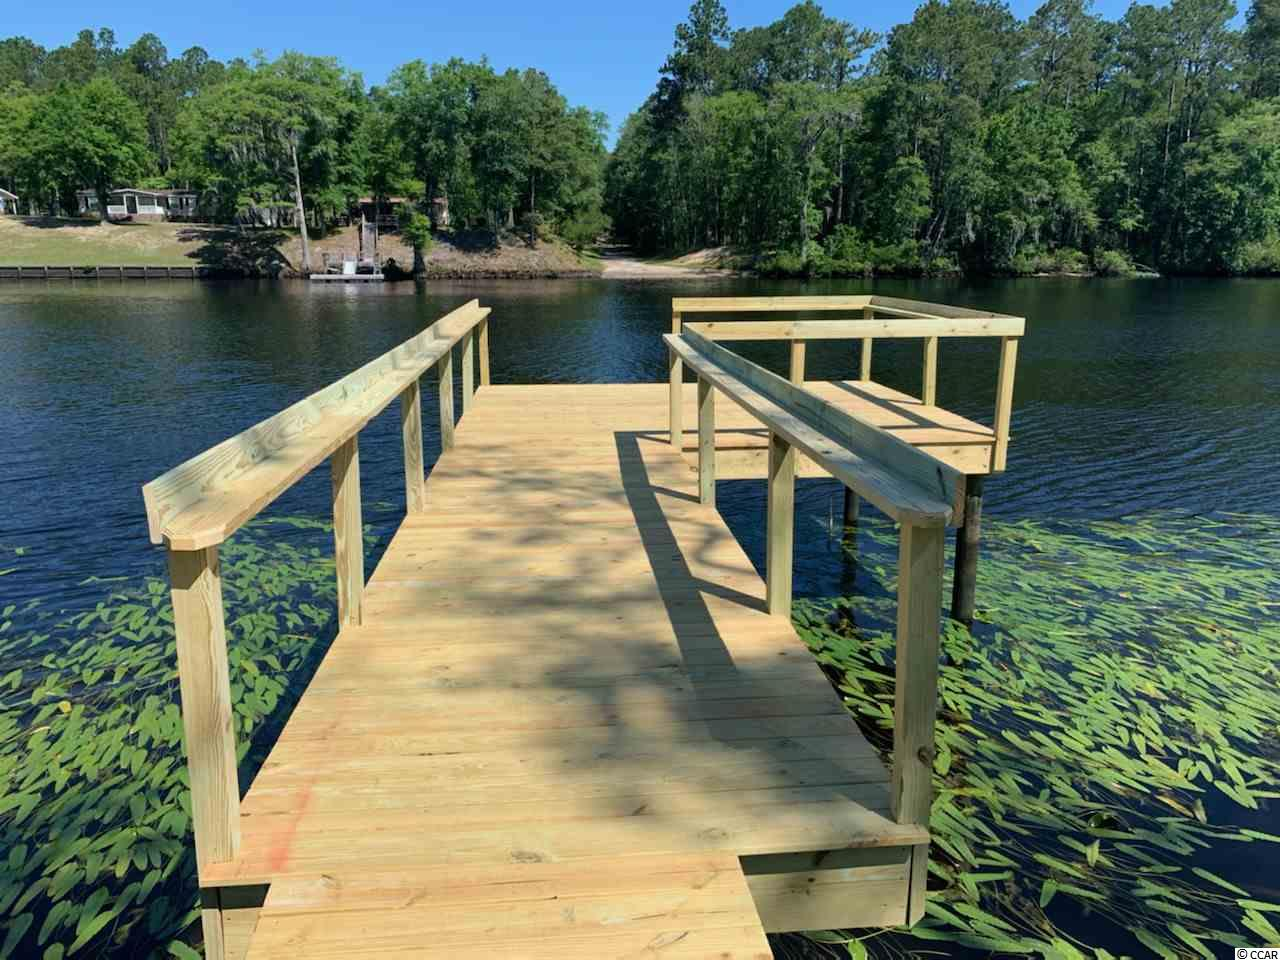 This is a rare opportunity to own a place on Black River and truly make it your own.   One of the last remaining waterfront lots on Cherokee Drive, this 1 acre property cleared and ready to build a house. With 125 feet of waterfront, the property features a deep well but the owner will have the option to join the county water system if desired.   The space for a future home sits on a high hill and provides many opportunities. Between the hill and the river is a swampy area with a elevated walkway that winds through cypress trees. At the end of the walkway are pilings that have already been driven into the ground for a future dock, but a platform has not been constructed - also providing many opportunities to customize this feature to your liking.   Just 20 minutes from Georgetown by car and ~1 hour by boat, this places  makes he perfect weekend getaway.